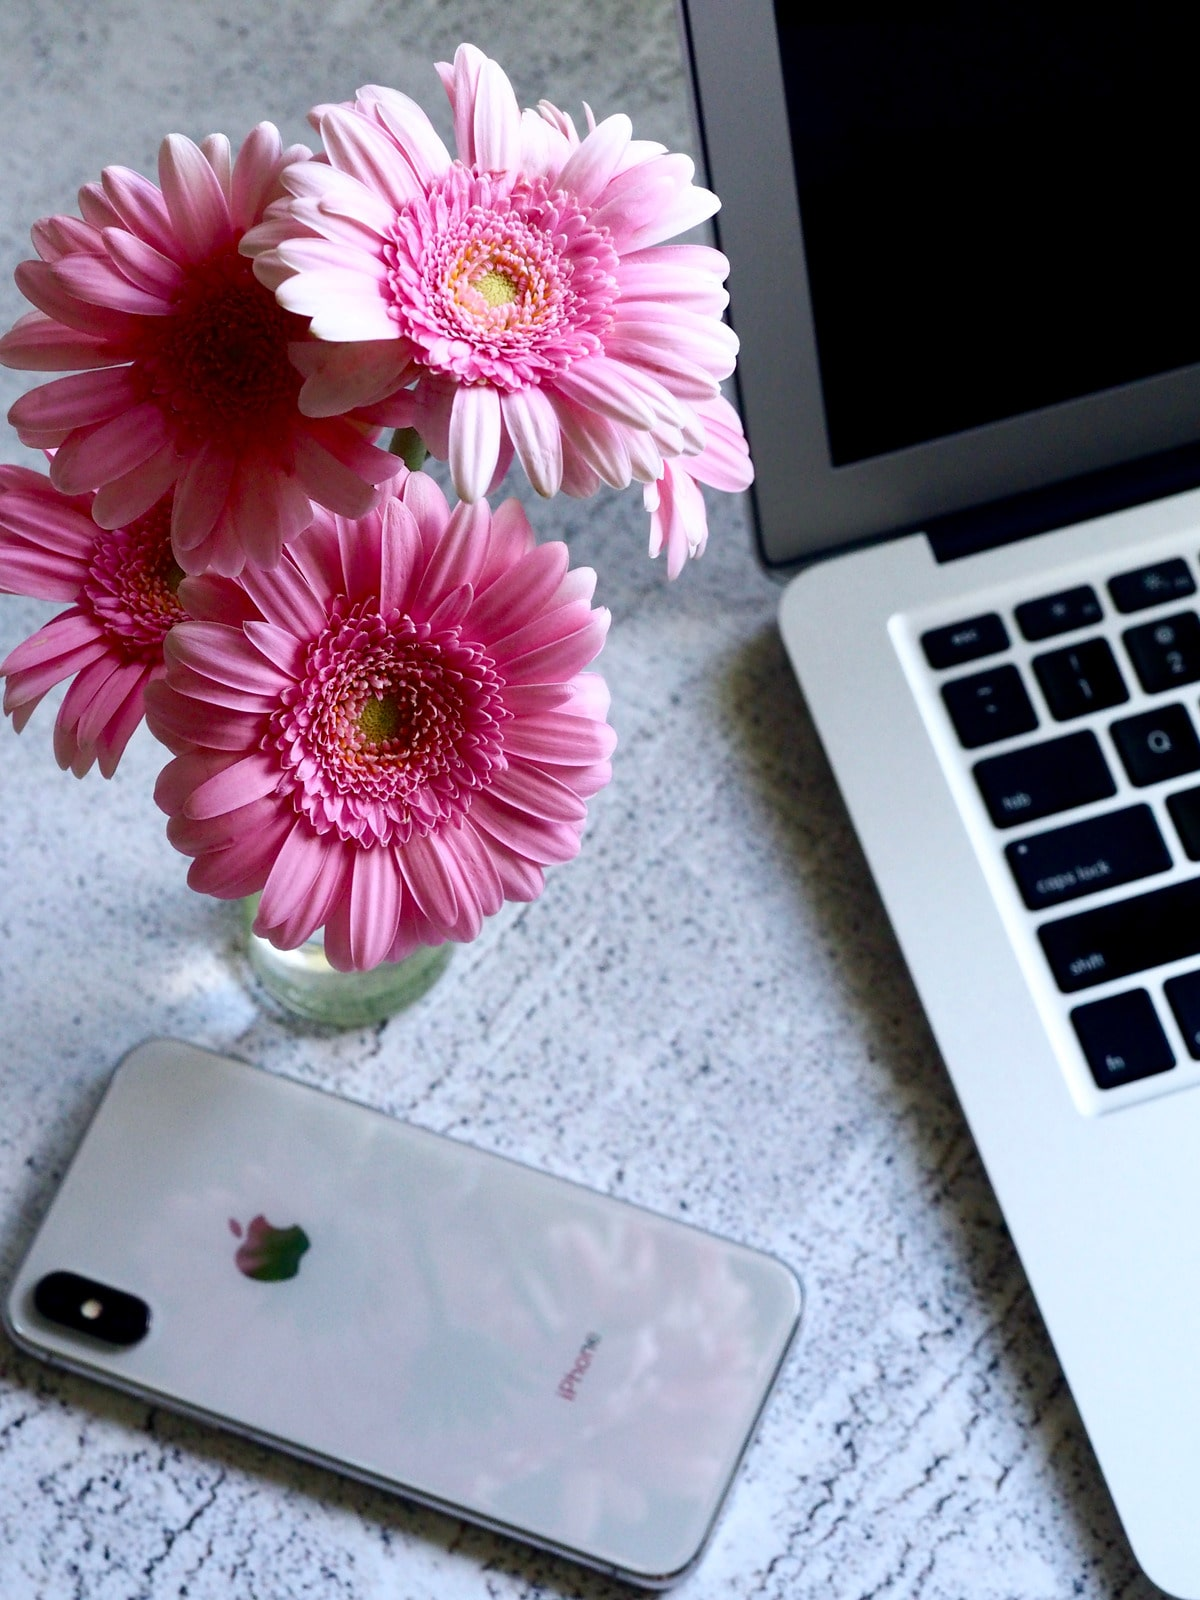 silver iphone x with pink daisys and macbook